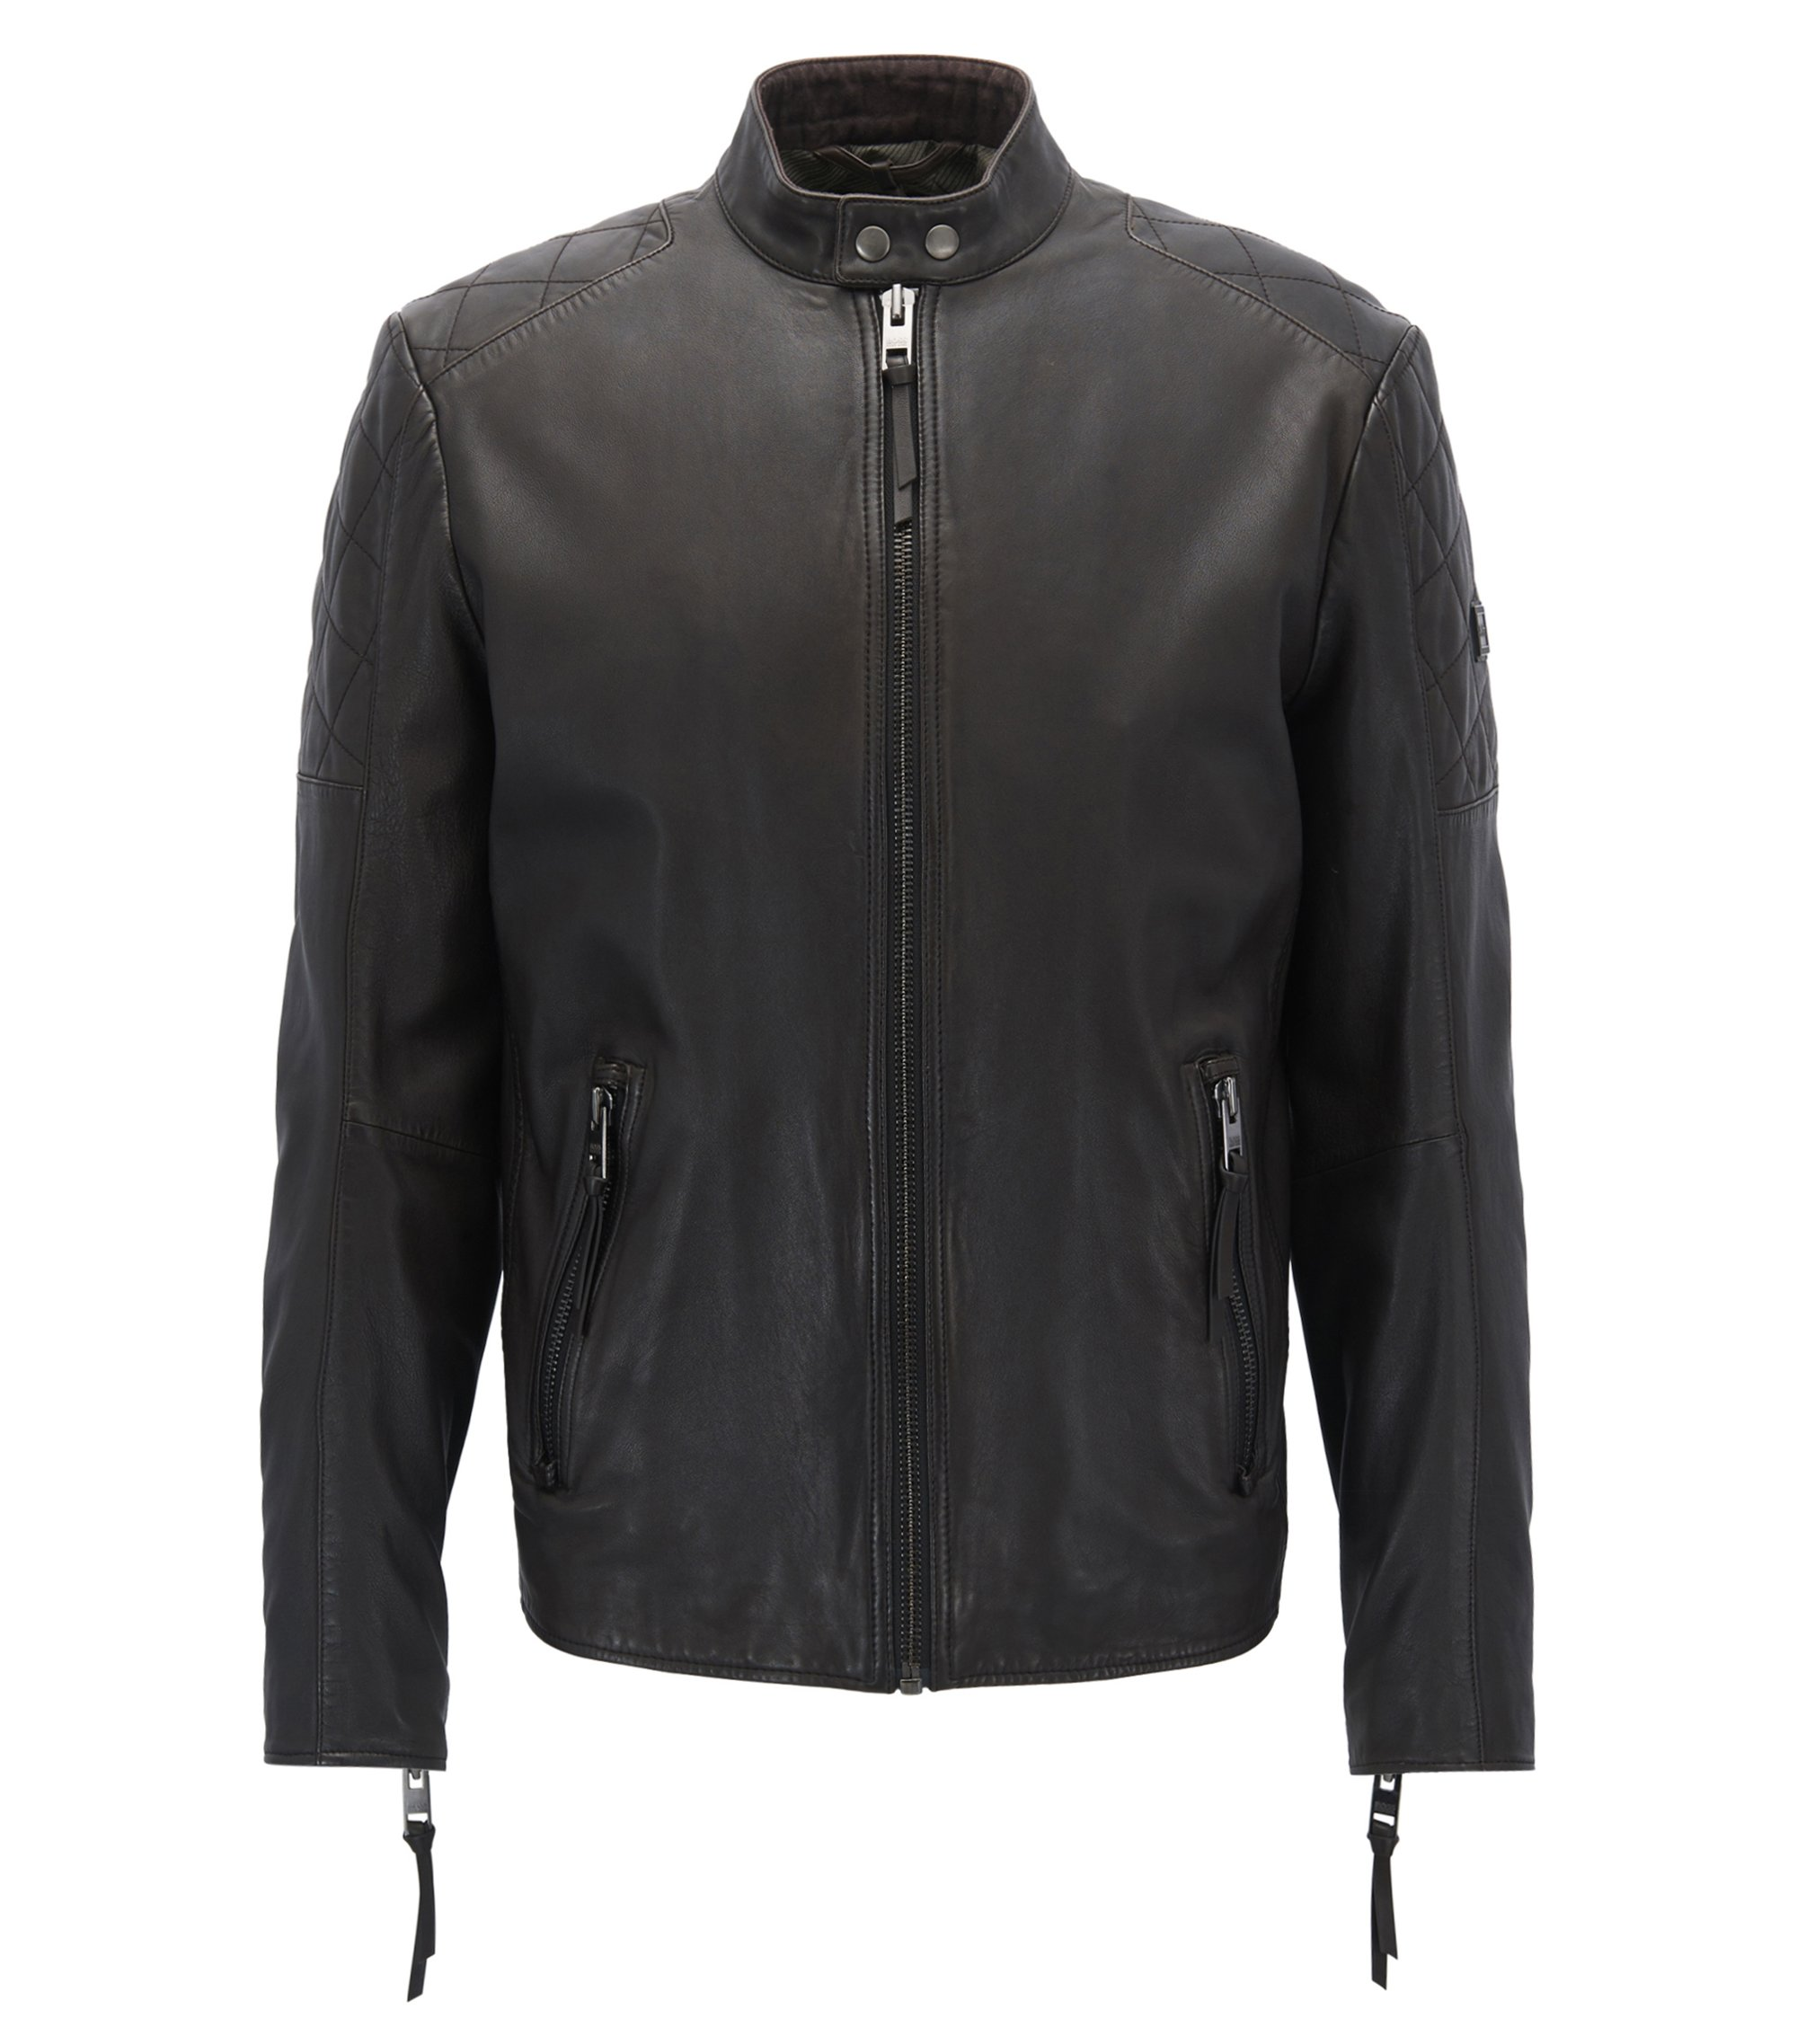 Giubbotto biker slim fit in pelle trattata a mano, Marrone scuro